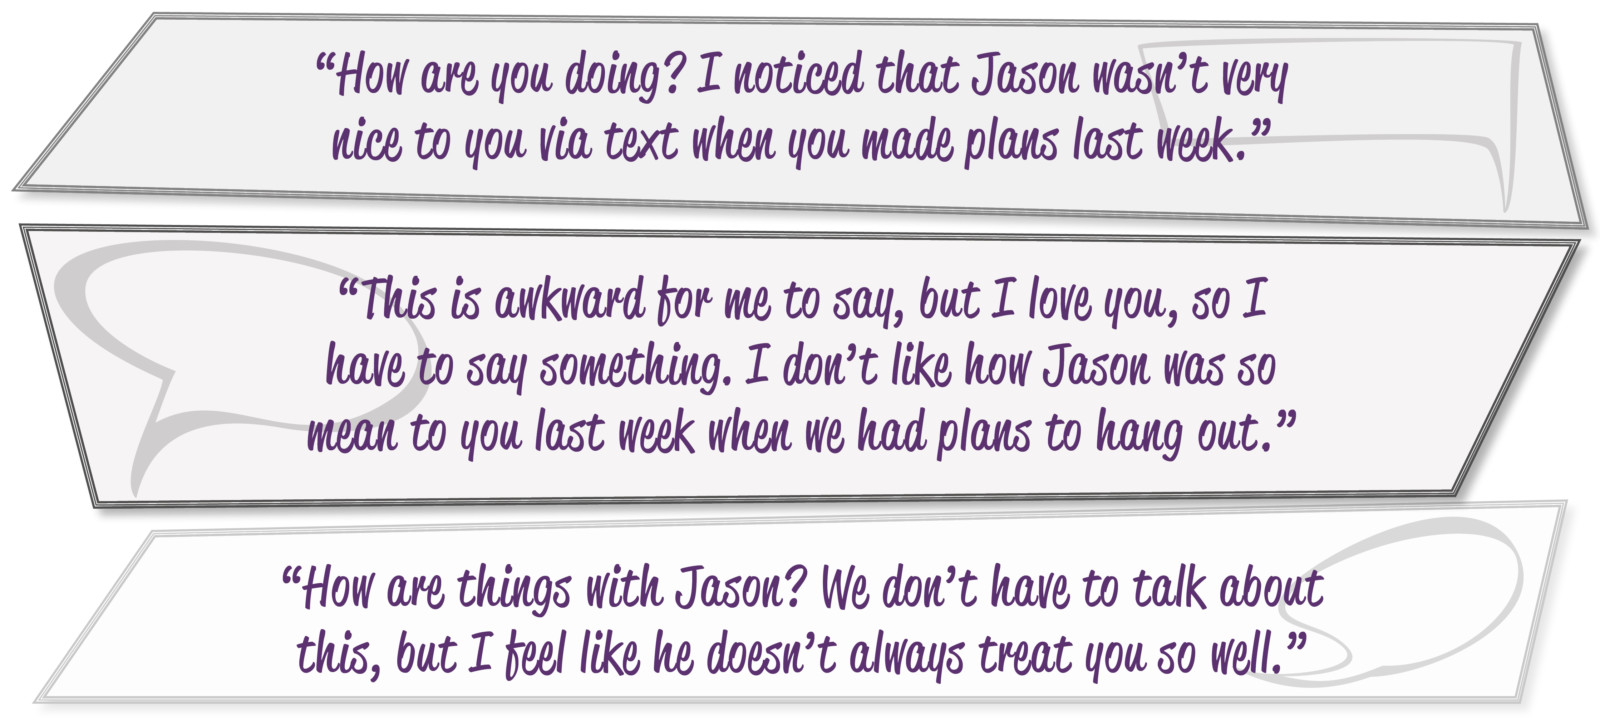 """How are you doing? I noticed that Jason wasn't very nice to you via text when you made plans last week."" ""This is awkward for me to say, but I love you, so I have to say something. I don't like how Jason was so mean to you last week when we had plans to hang out."" ""How are things with Jason? We don't have to talk about this, but I feel like he doesn't always treat you so well."""